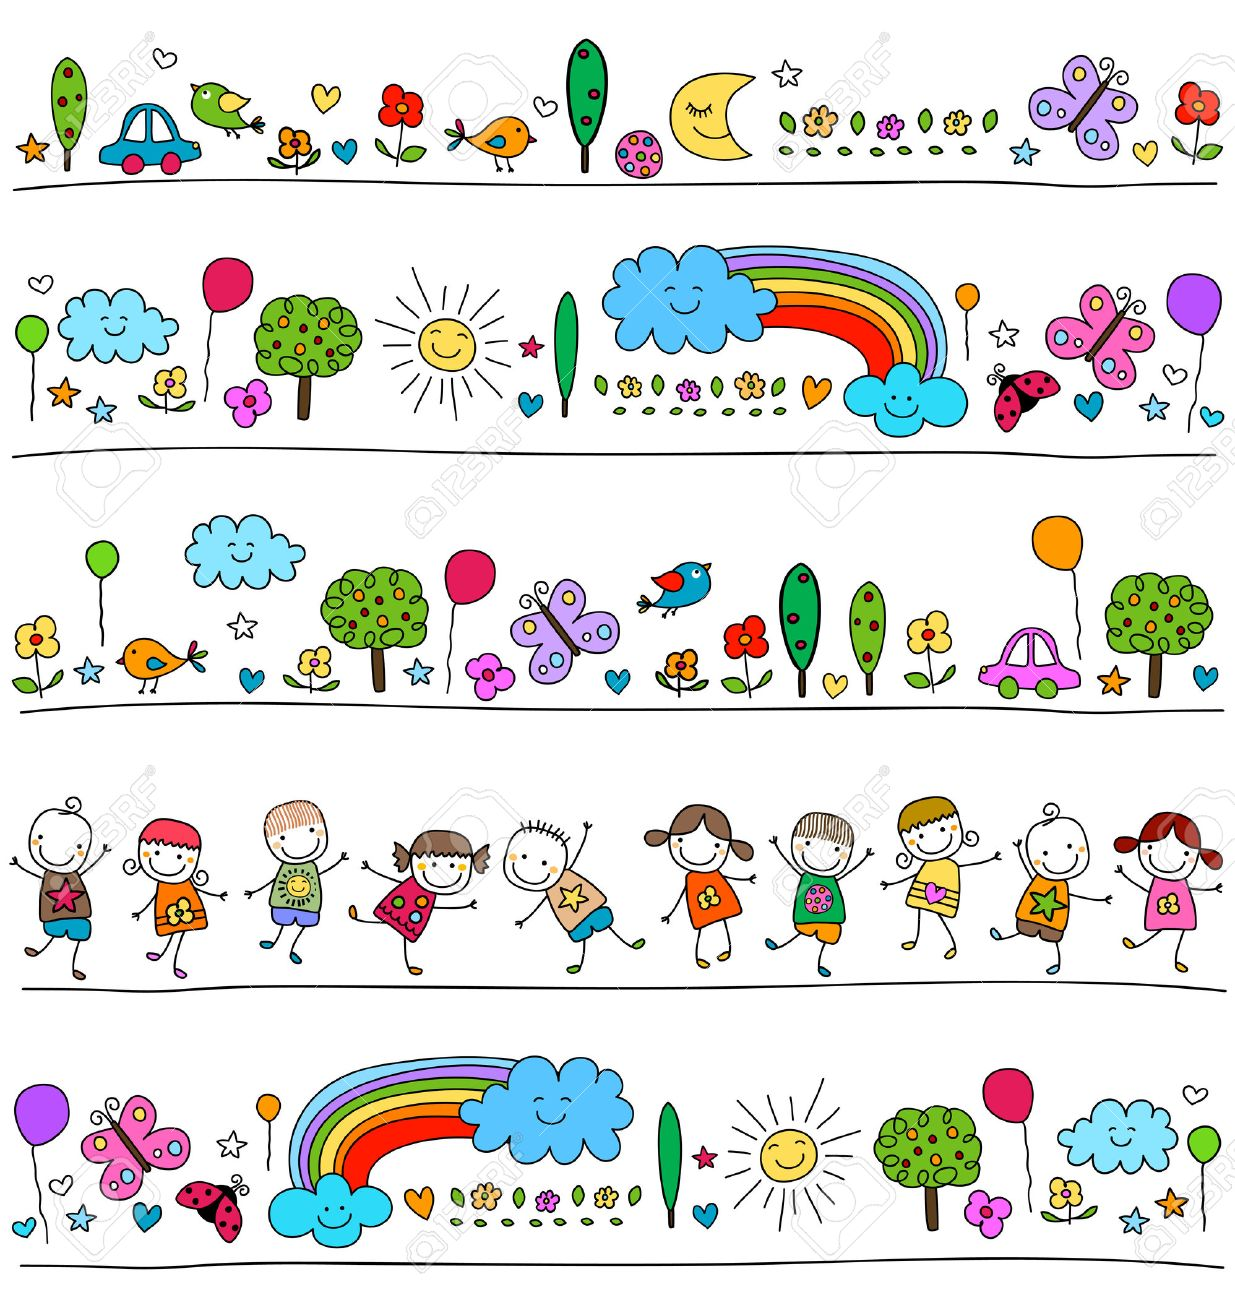 colorful pattern for children with cute nature elements, child like drawing style - 39348627